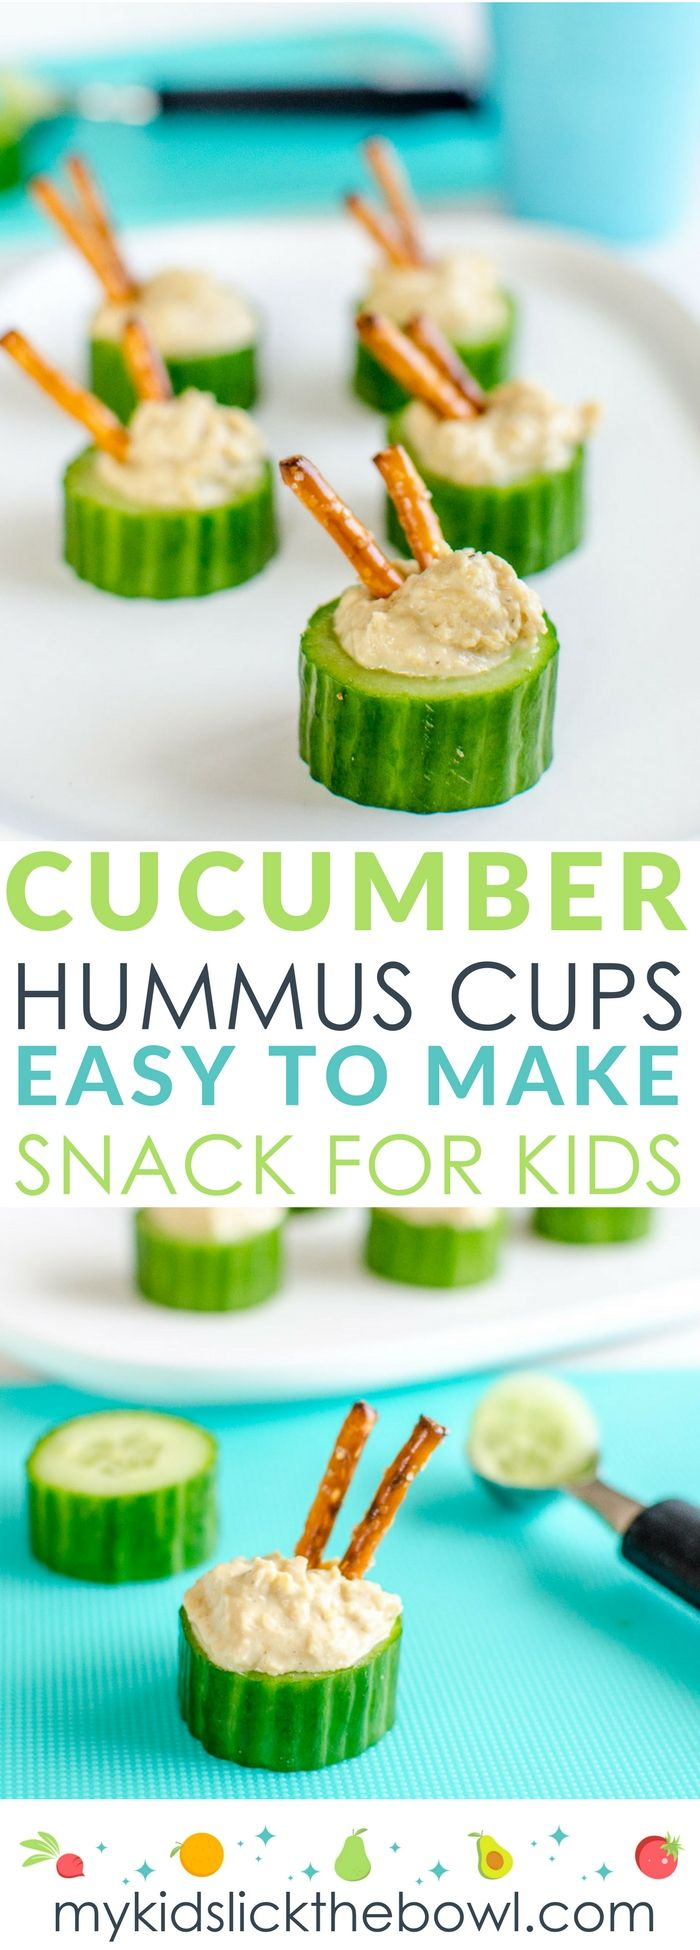 Cucumber hummus cups an easy healthy snack idea for kids could also be used for appetizers and finger foods #healthysnack #kidsfood